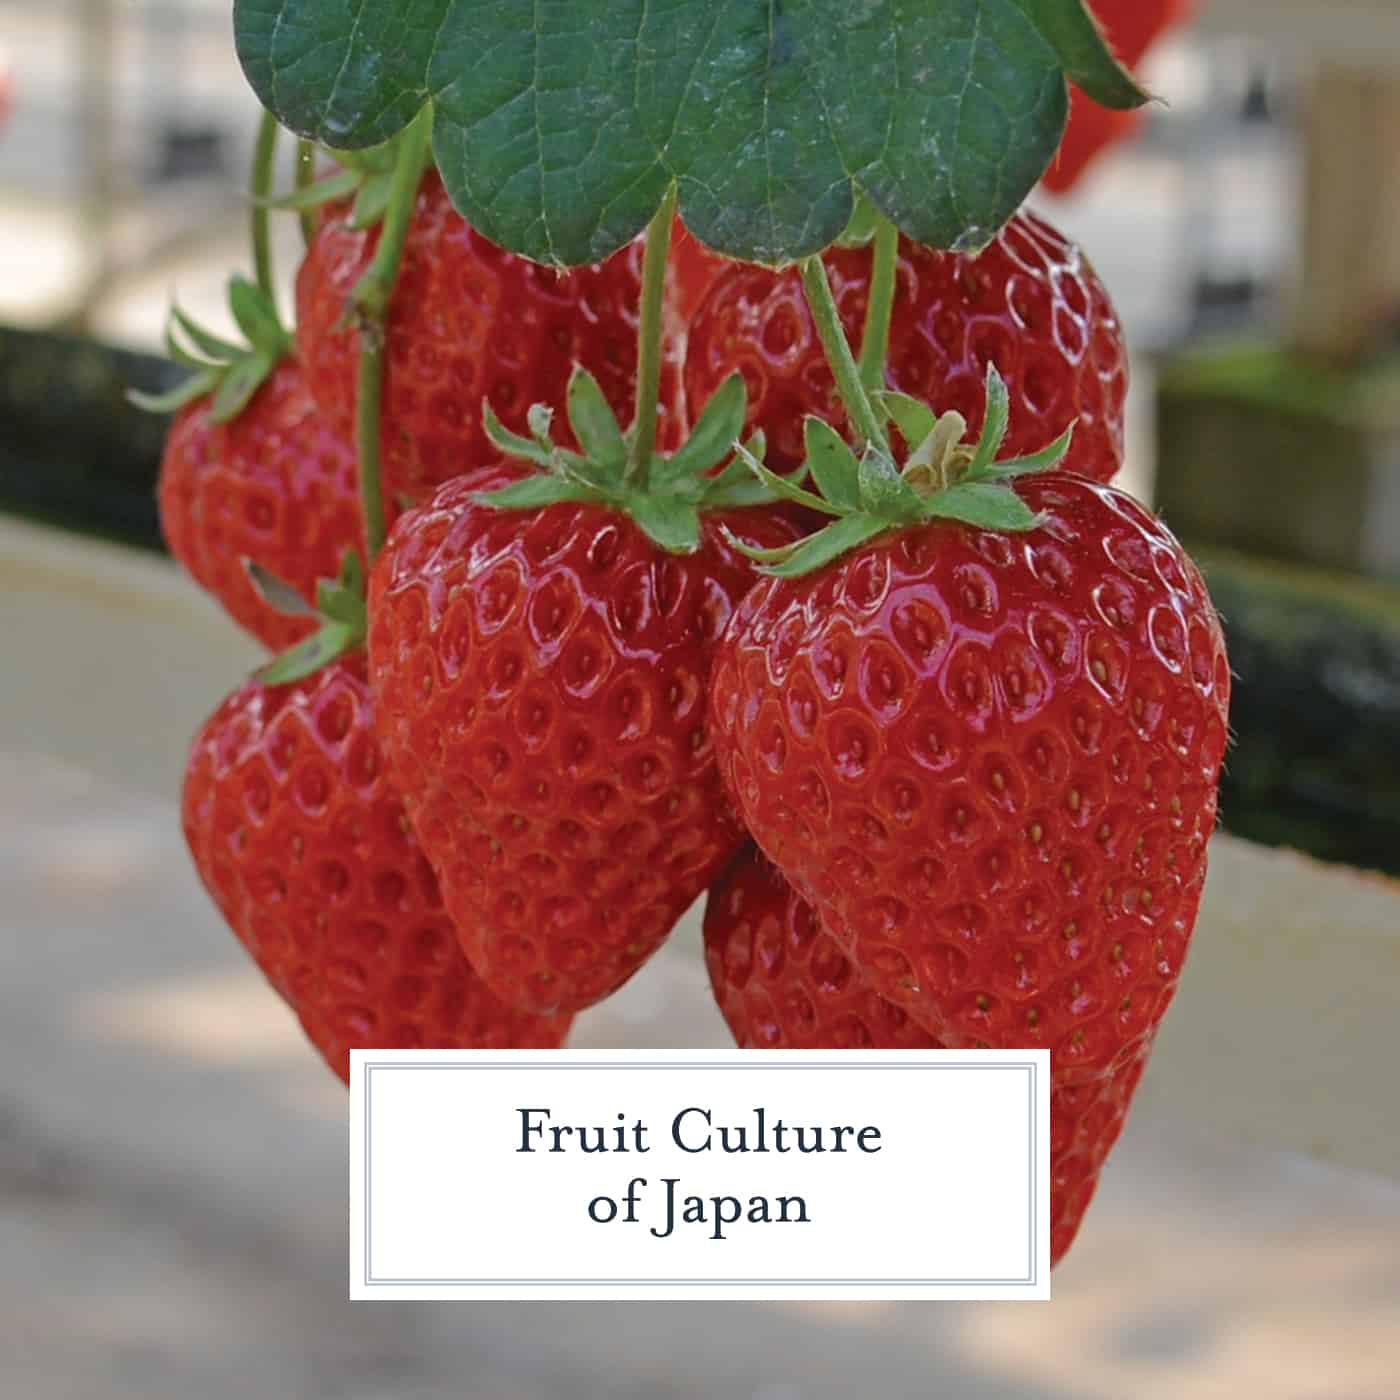 Strawberries aren't usually associated with Japan, but they grow some of the best strawberries in the world. Plan a strawberry picking adventure during your vacation!#japan www.savoryexperiments.com